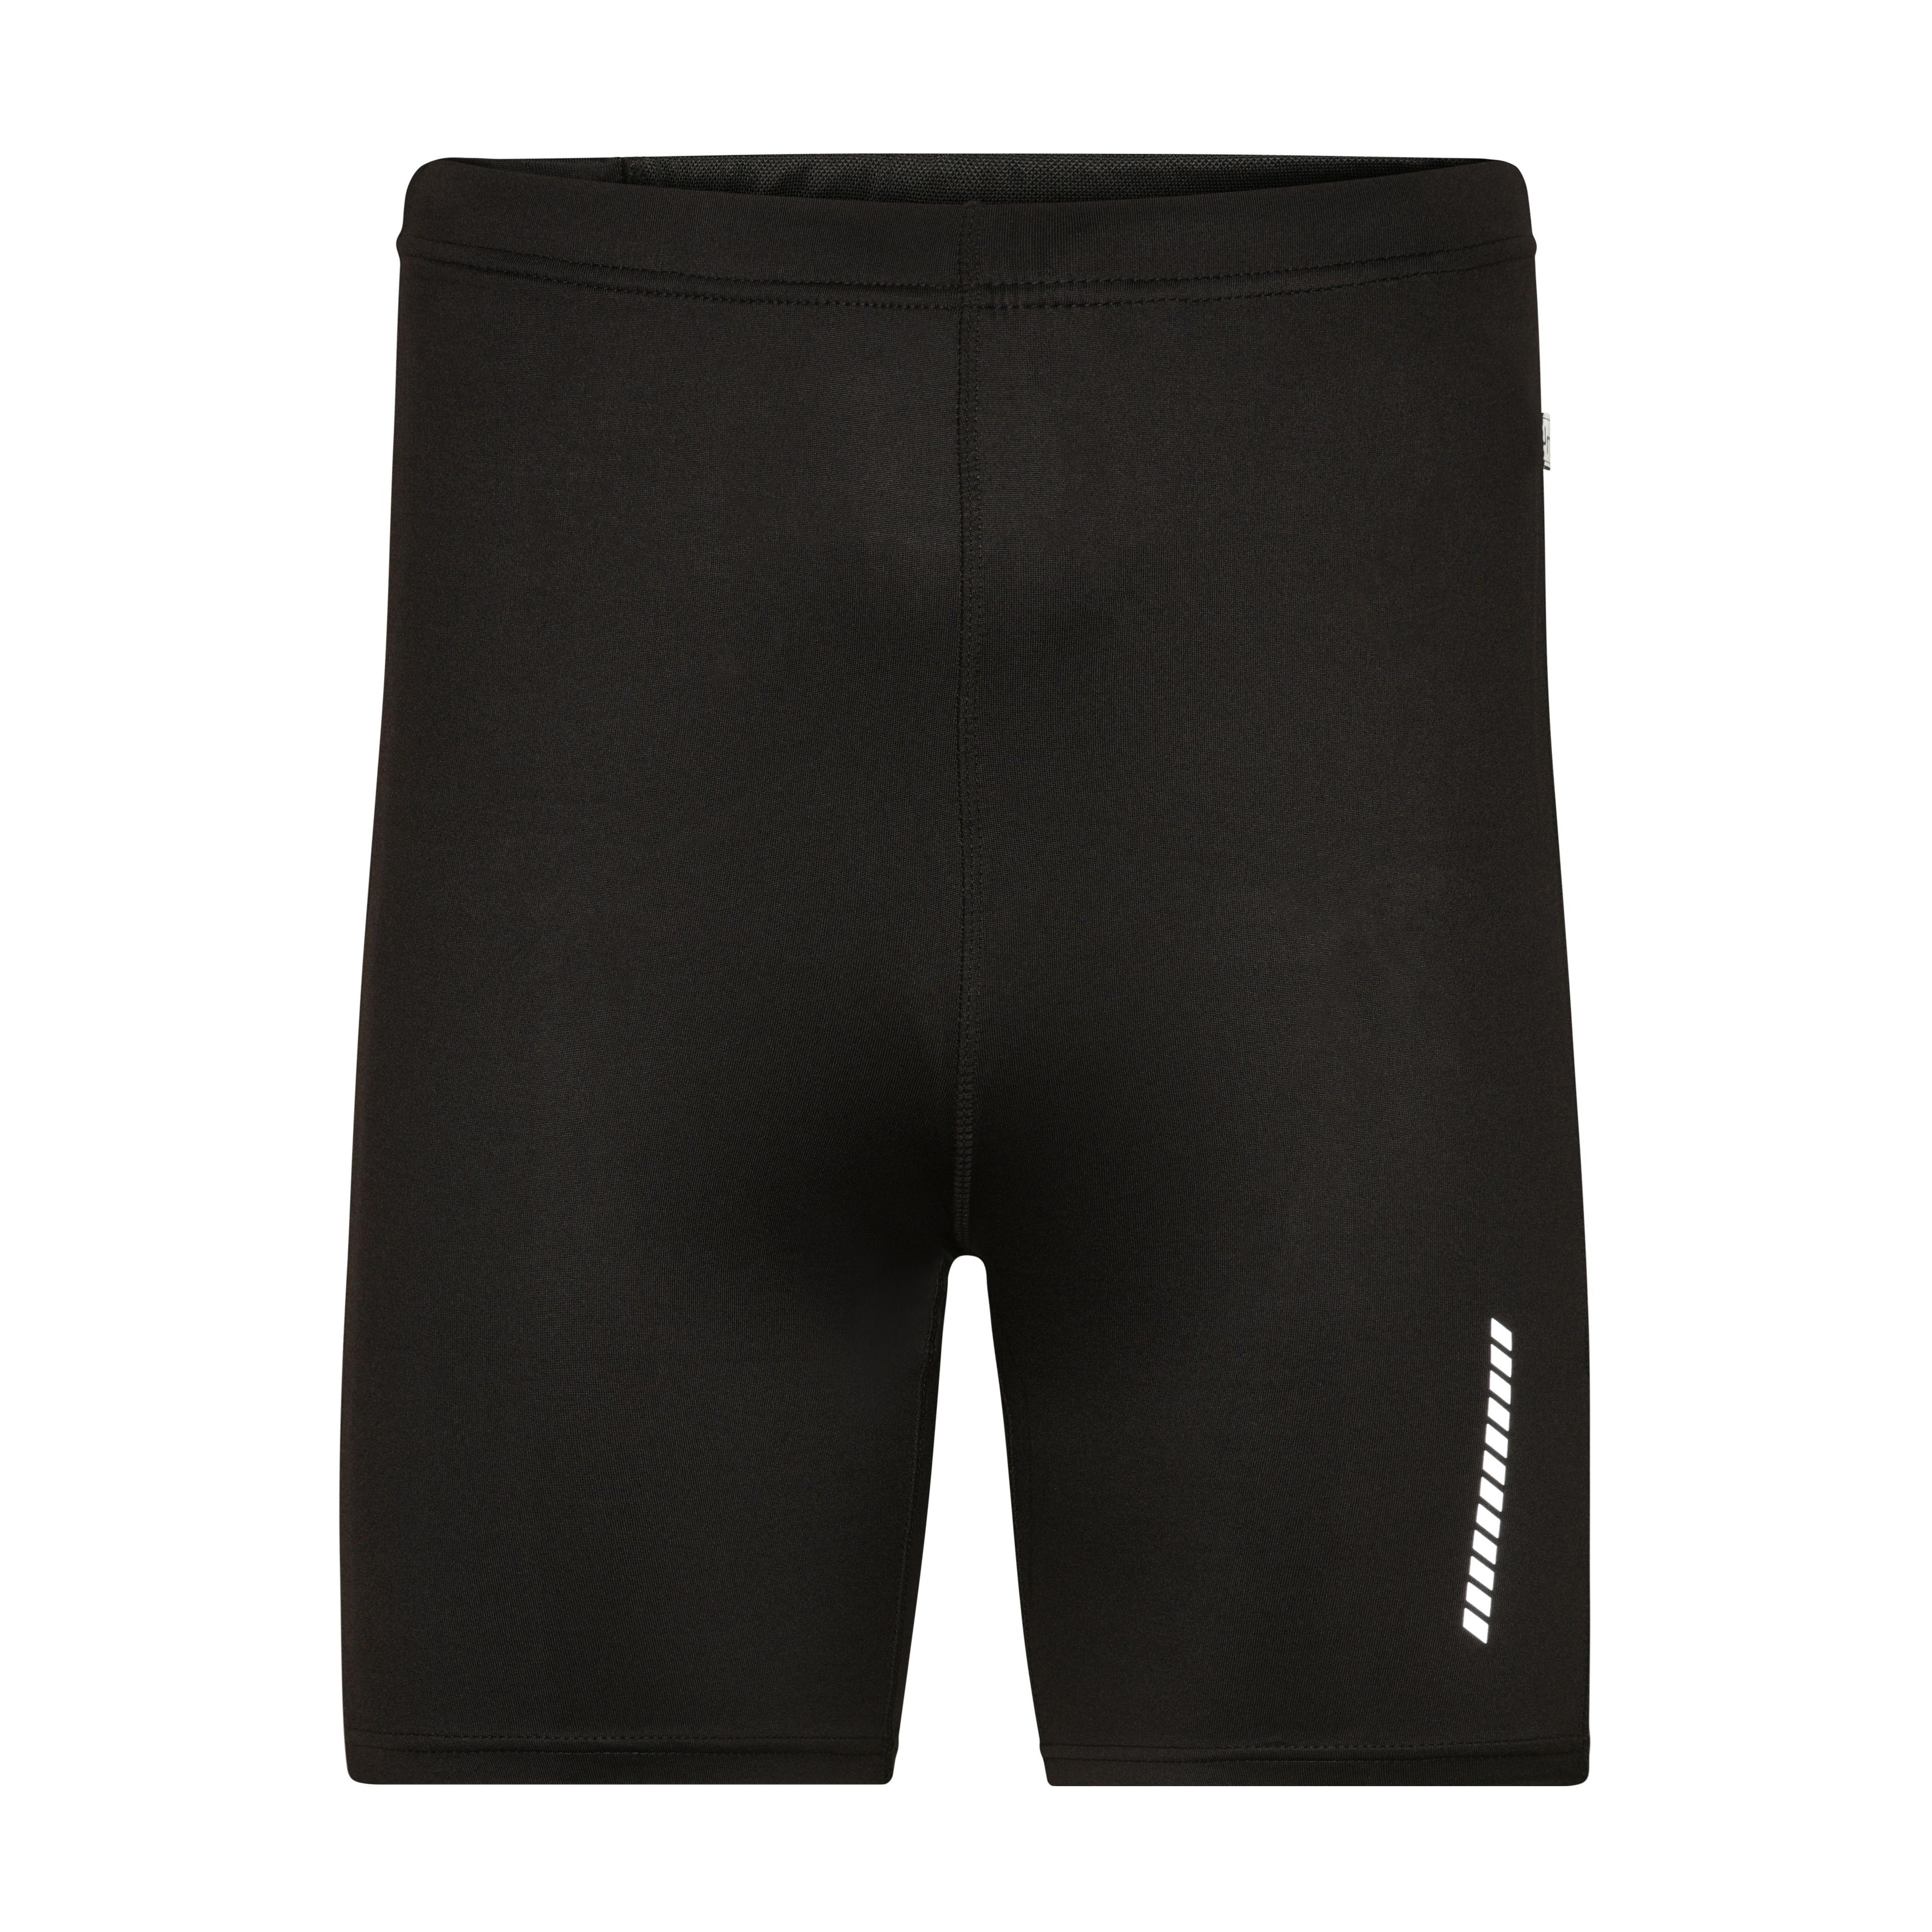 Men´s Running Short Tights